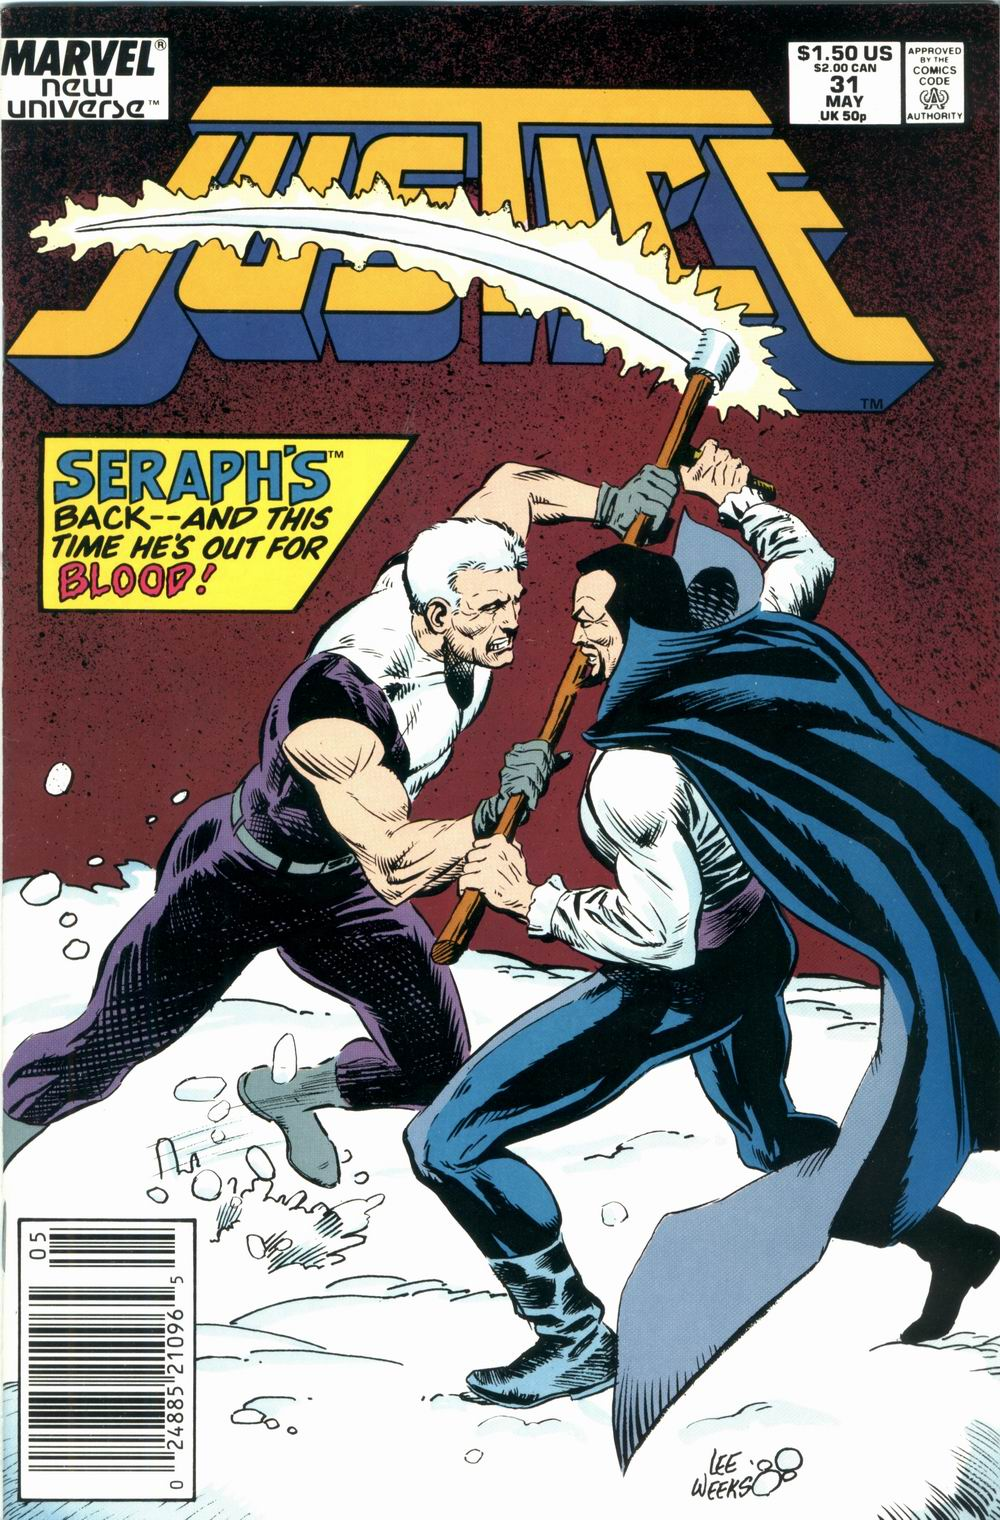 Justice (1986) 31 Page 1